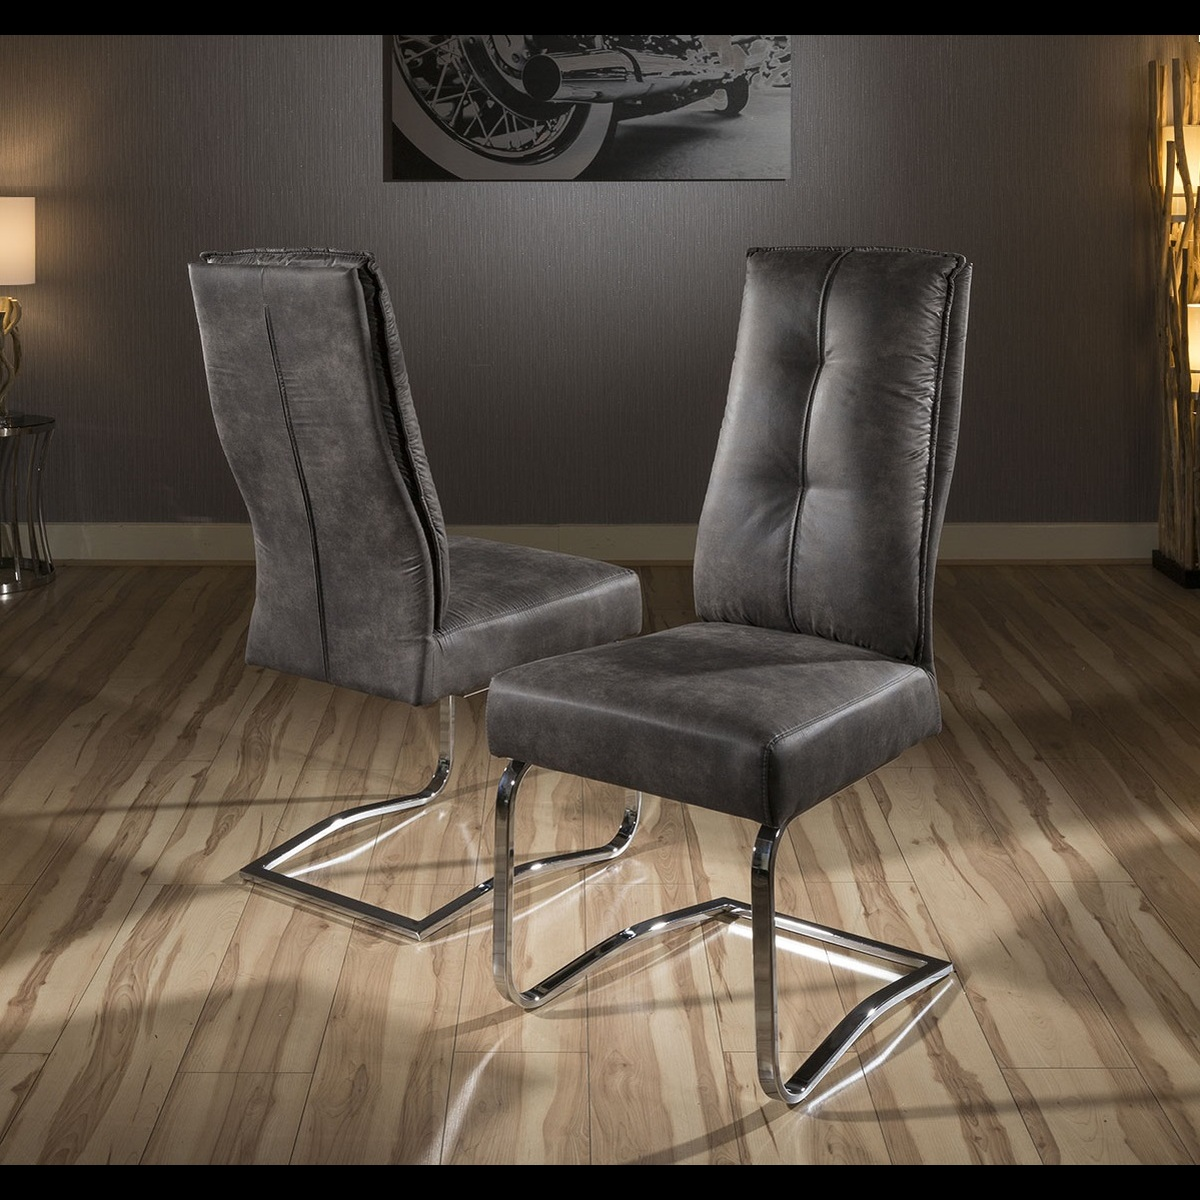 Super Comfy Chair Set Of 2 Large Padded Super Comfy Leather Dining Chairs